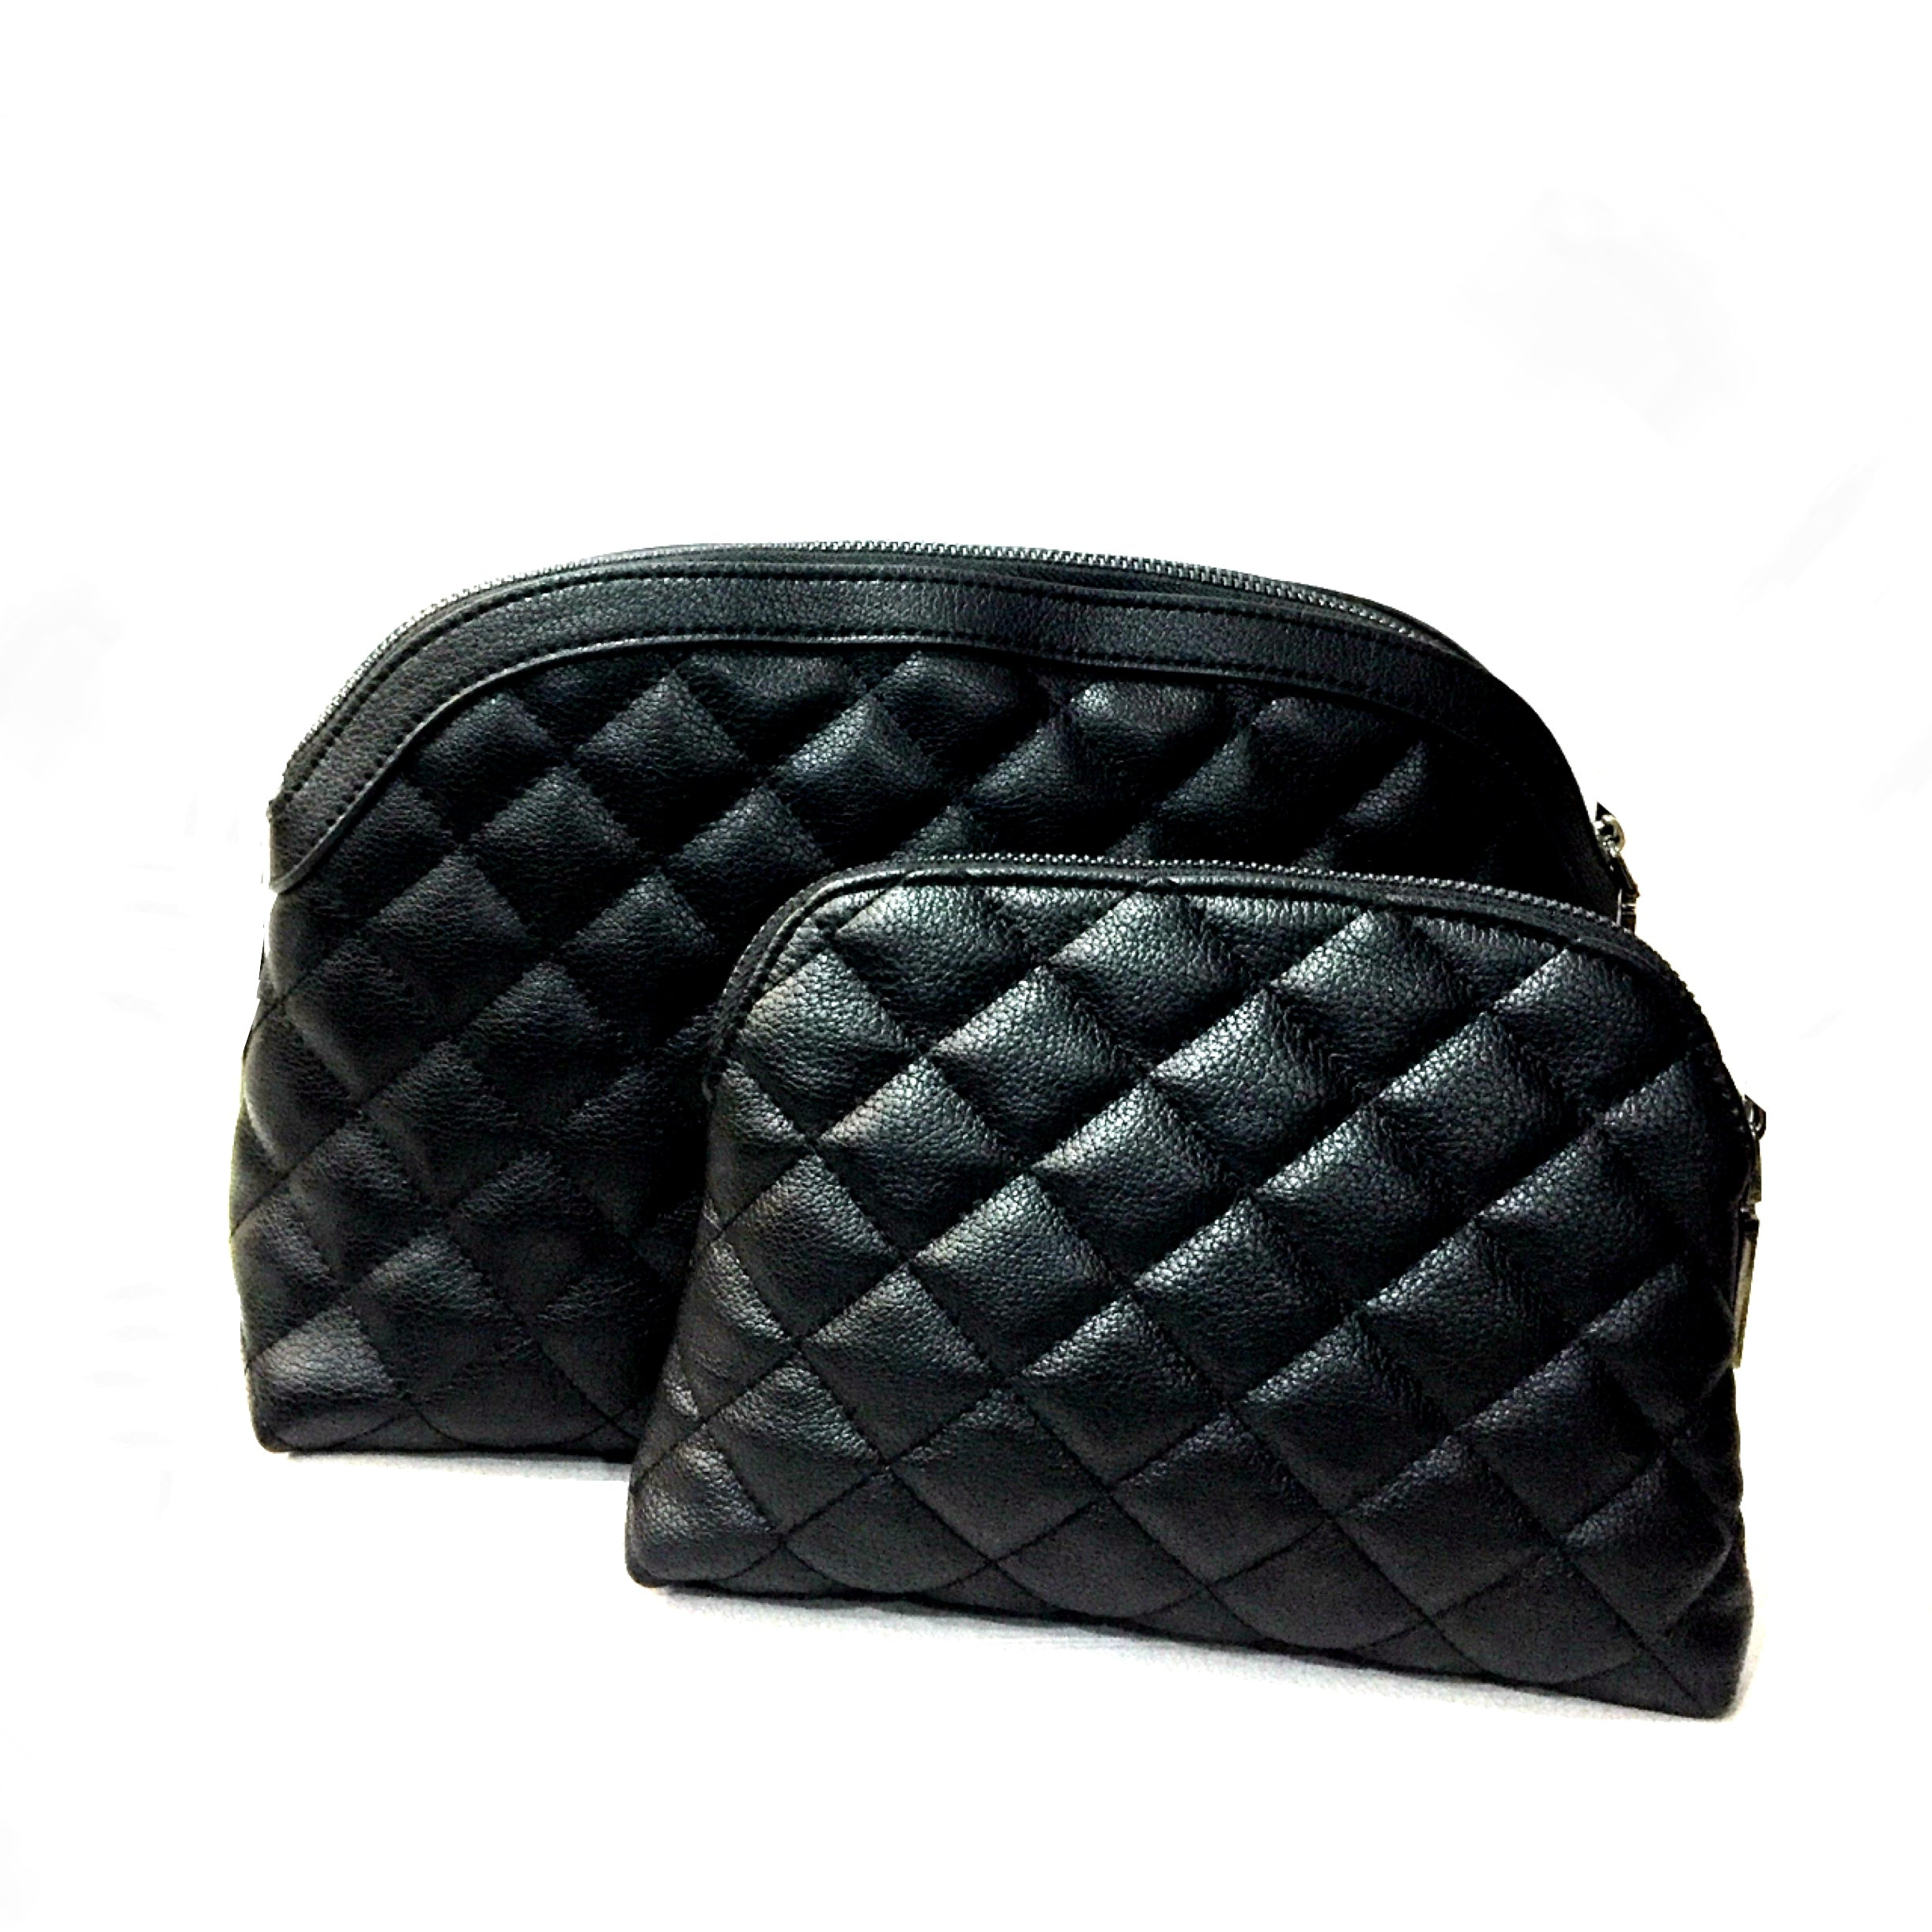 The Moselle Quilted Toiletries & Make Up Set - Black